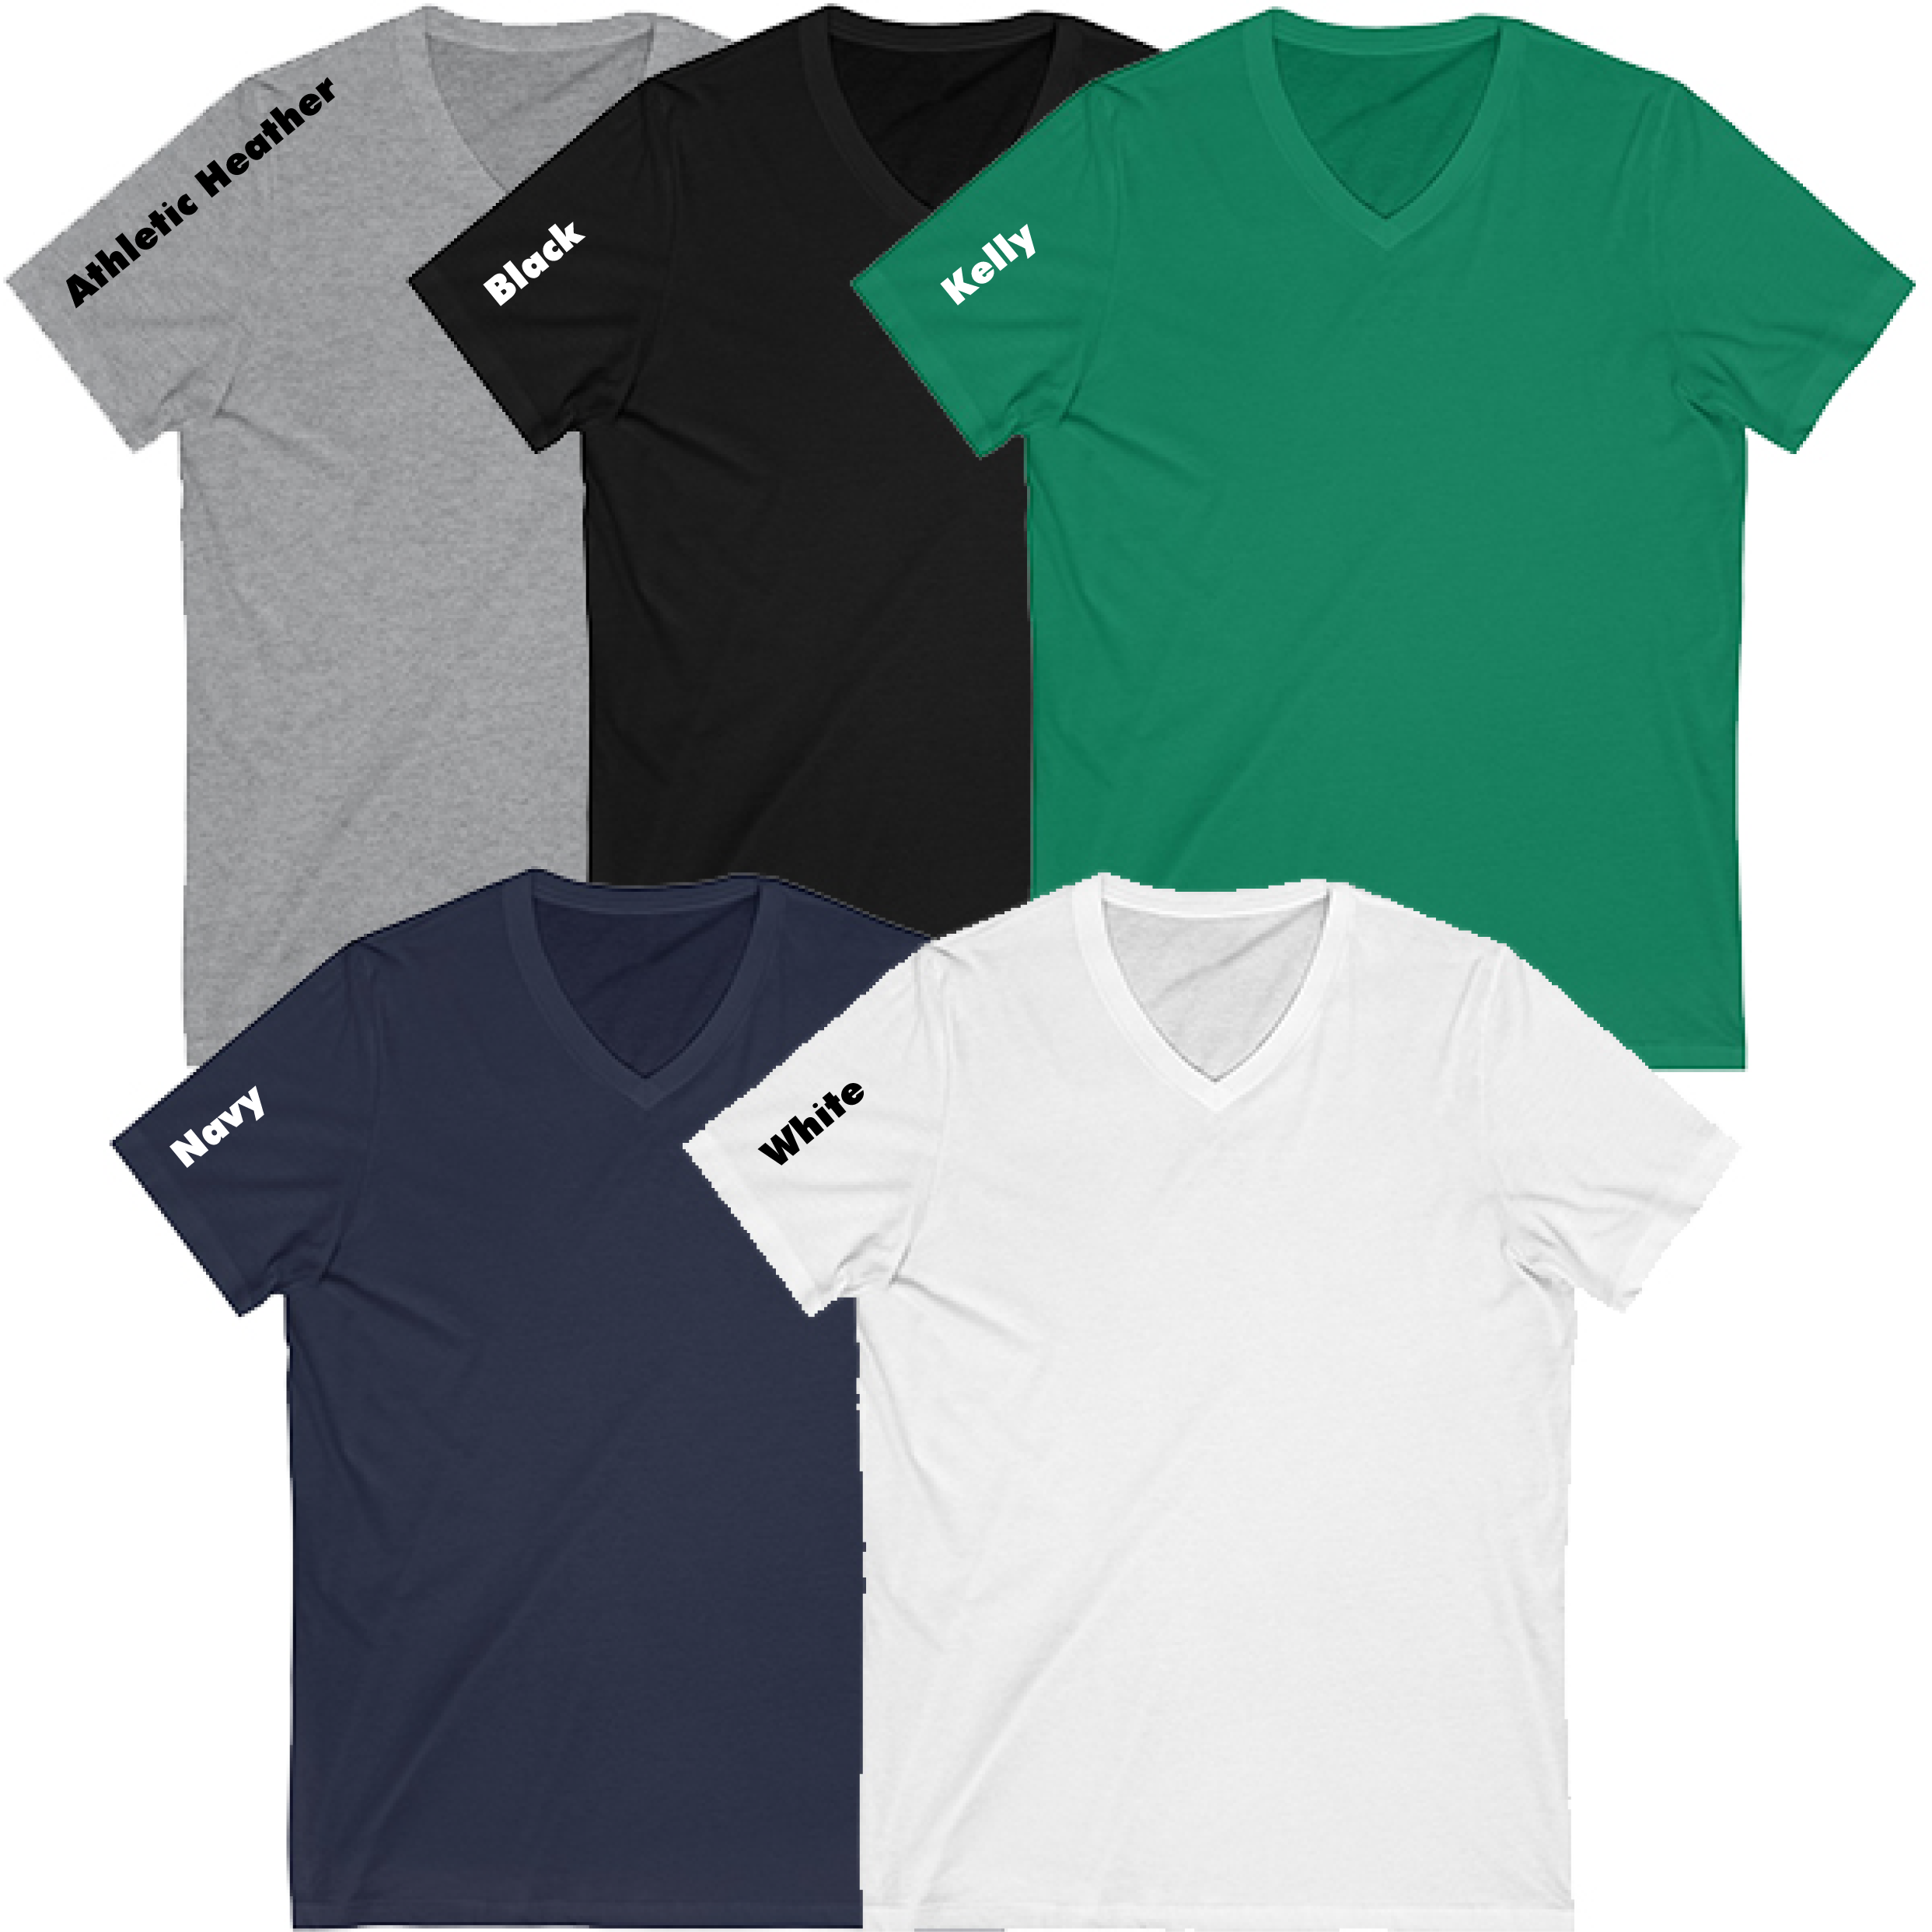 Gilden Shirt Colors